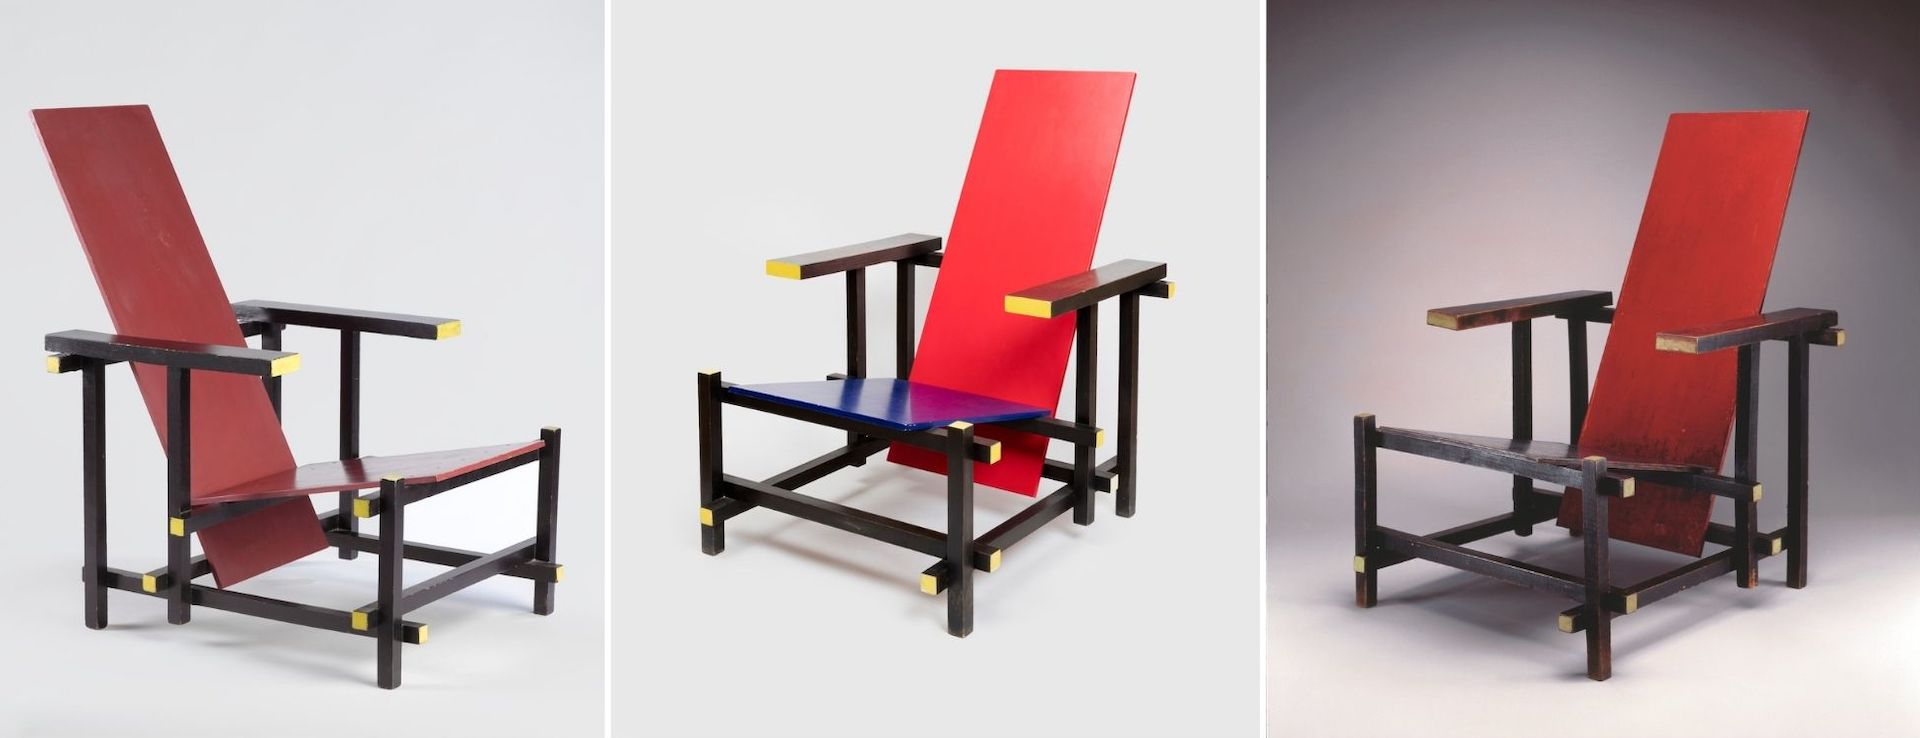 Most surviving Red Blue Chairs are in museum collections, like these found at the Brooklyn Museum, the Cooper Hewitt Museum, and the High Museum. Photos @ respective museums